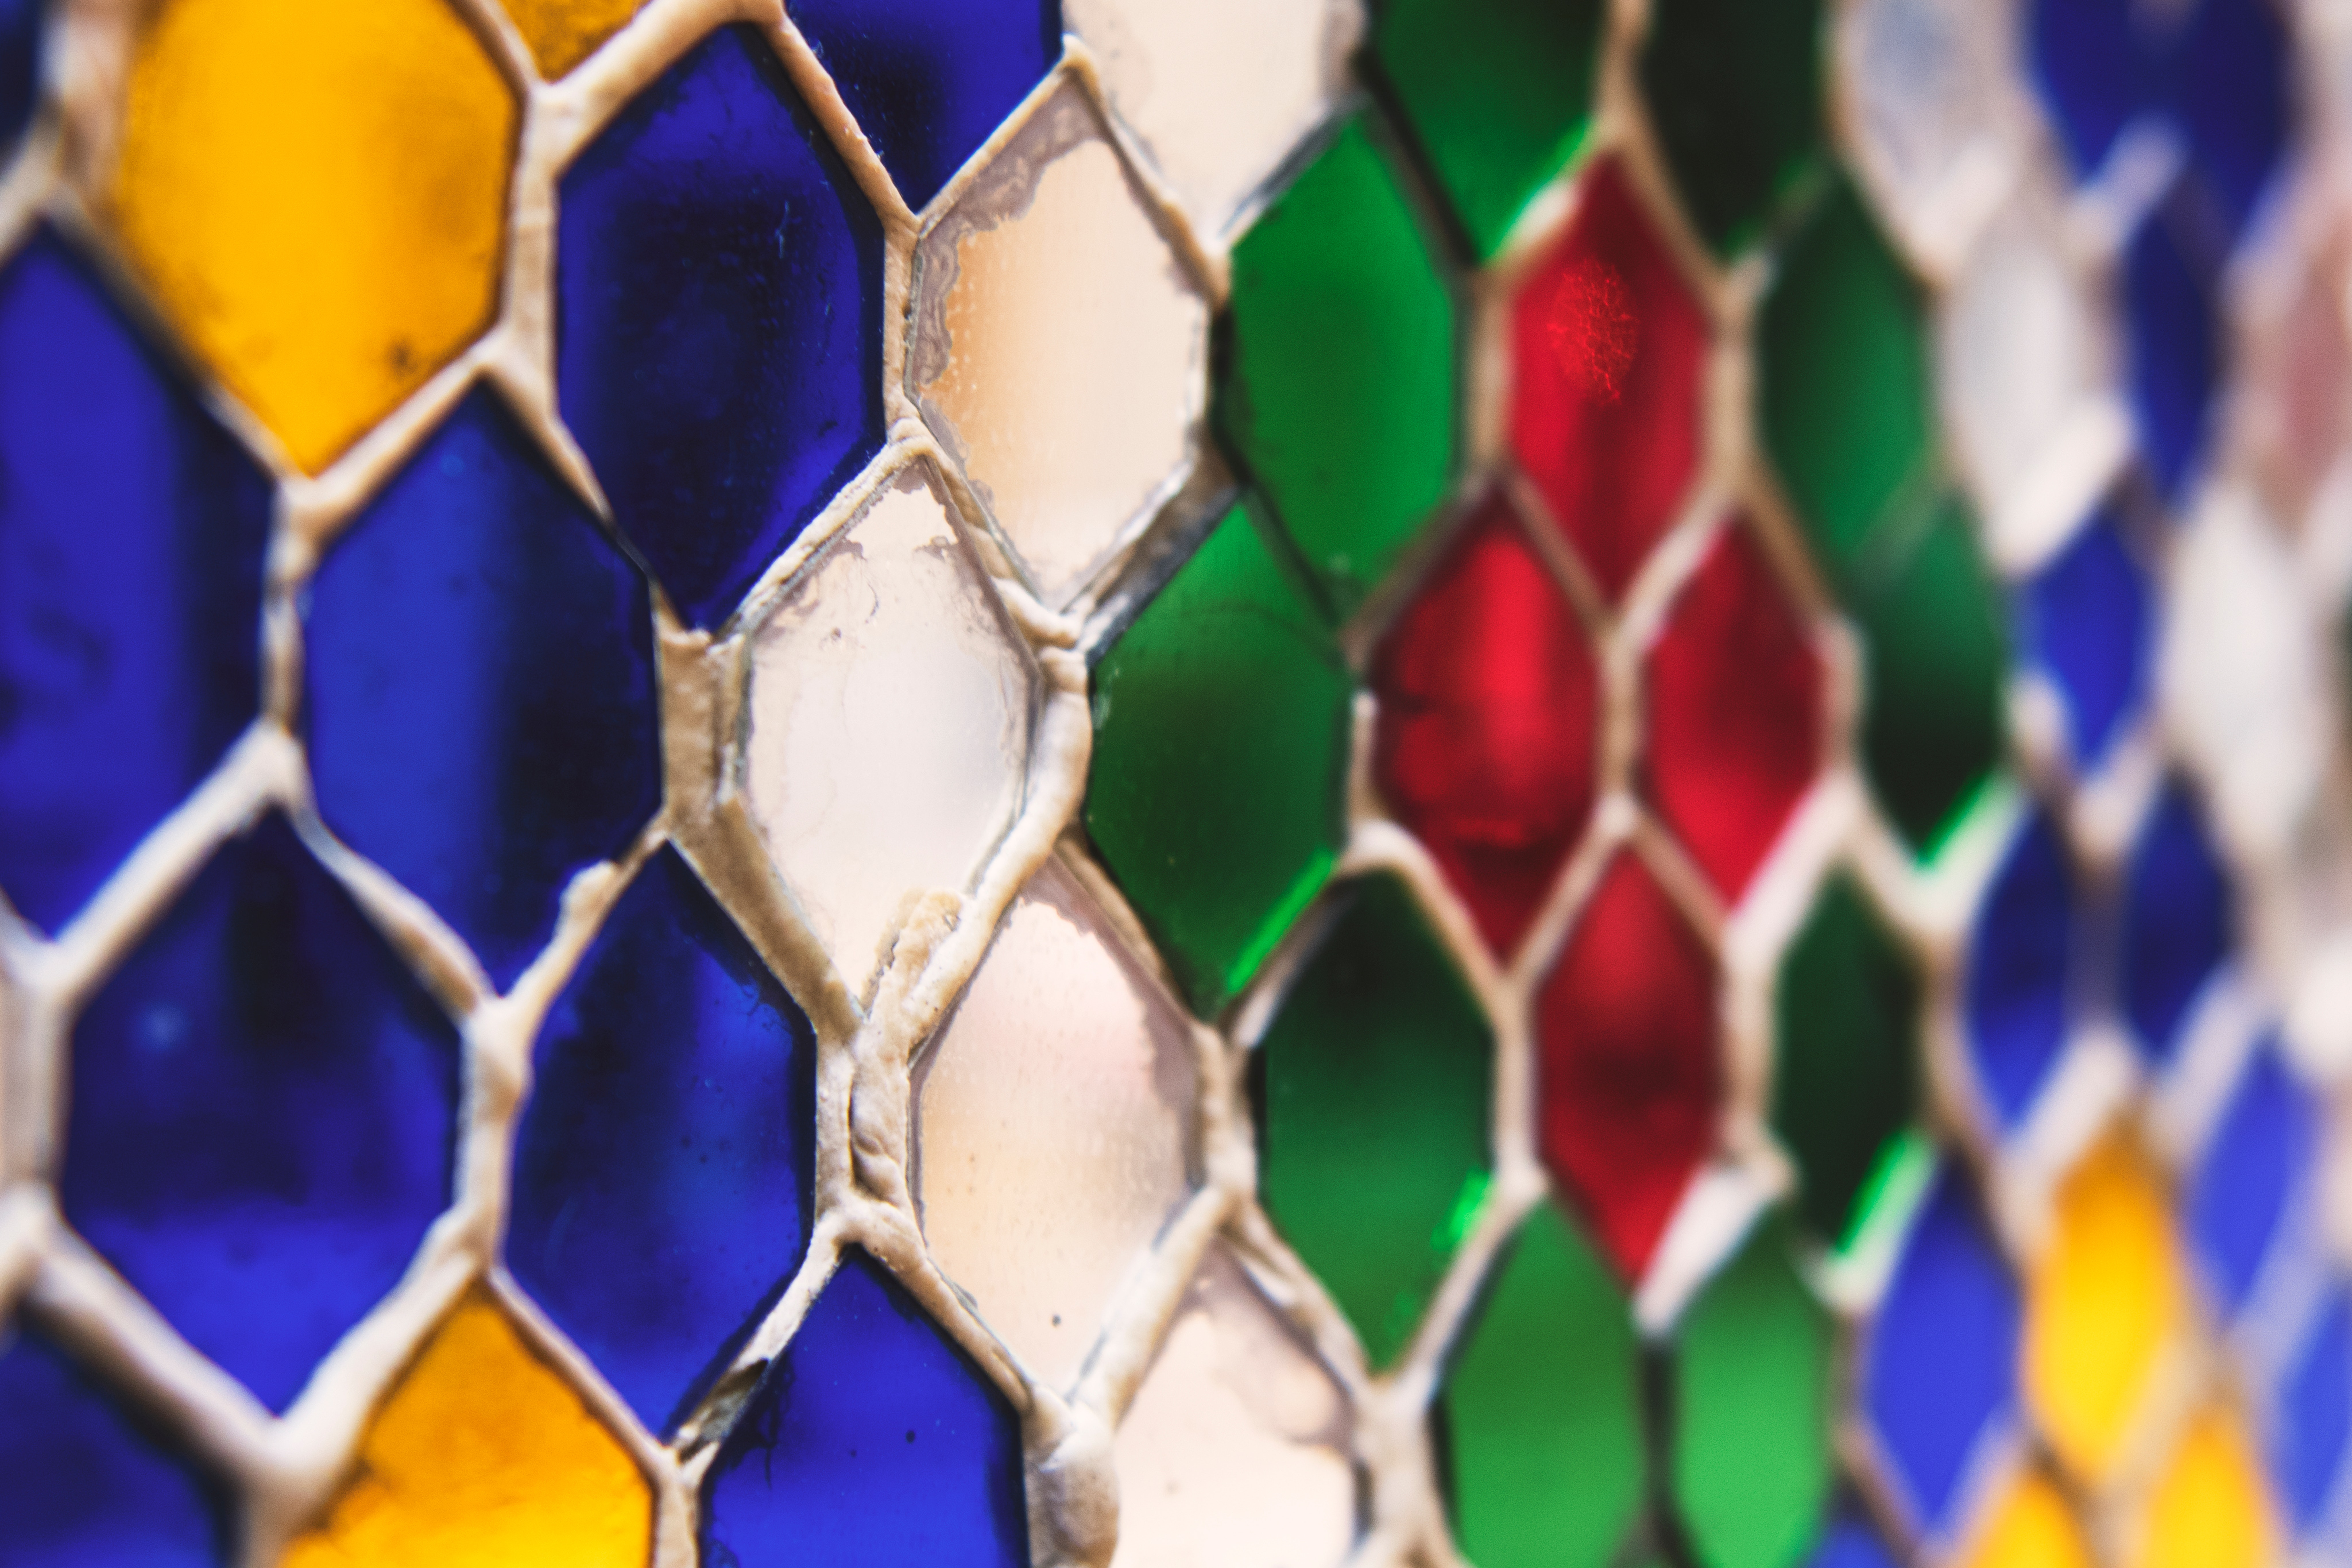 Multi-colored Material, Abstract, White, Wall, Tiles, HQ Photo